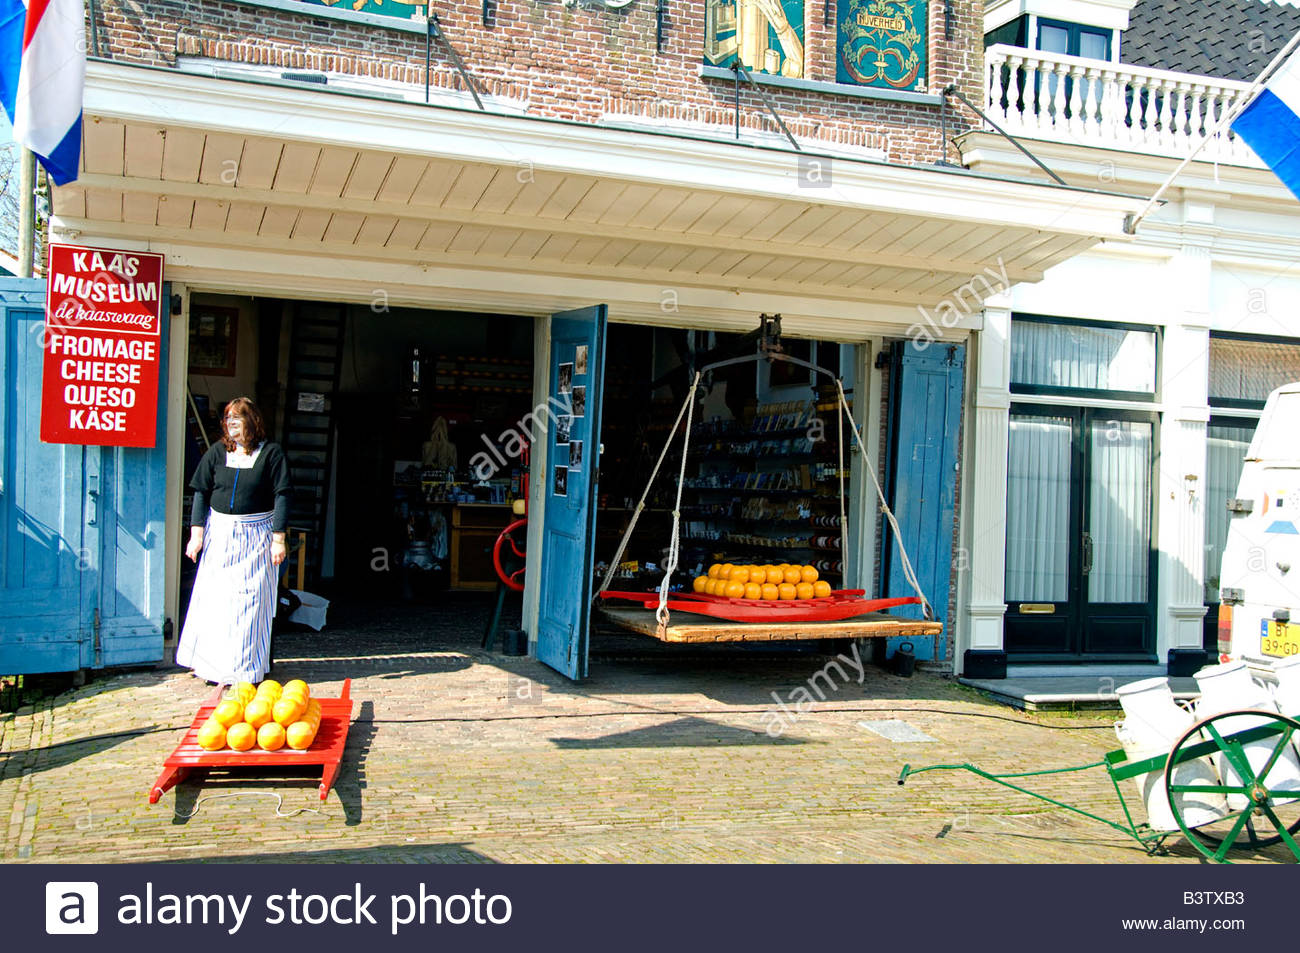 Netherlands (aka Holland). Medieval cheese producing town of Edam. Kass Cheese Museum, Kass Waag (weight house) - Stock Image